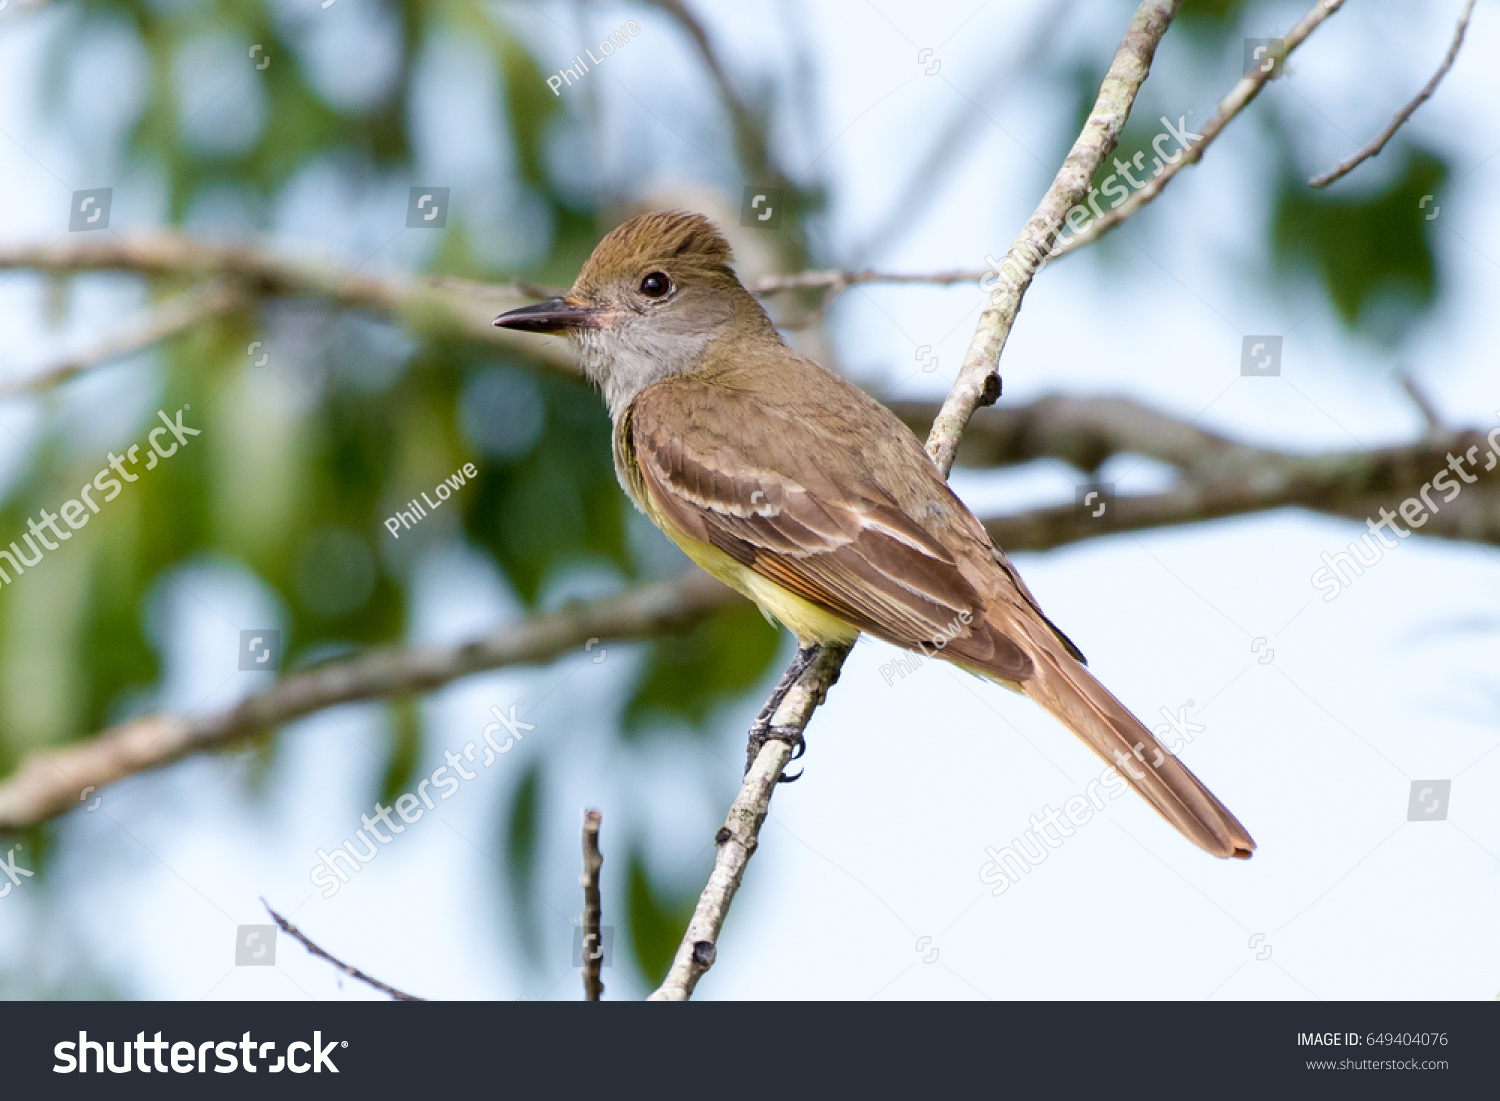 stock-photo-great-crested-flycatcher-myi